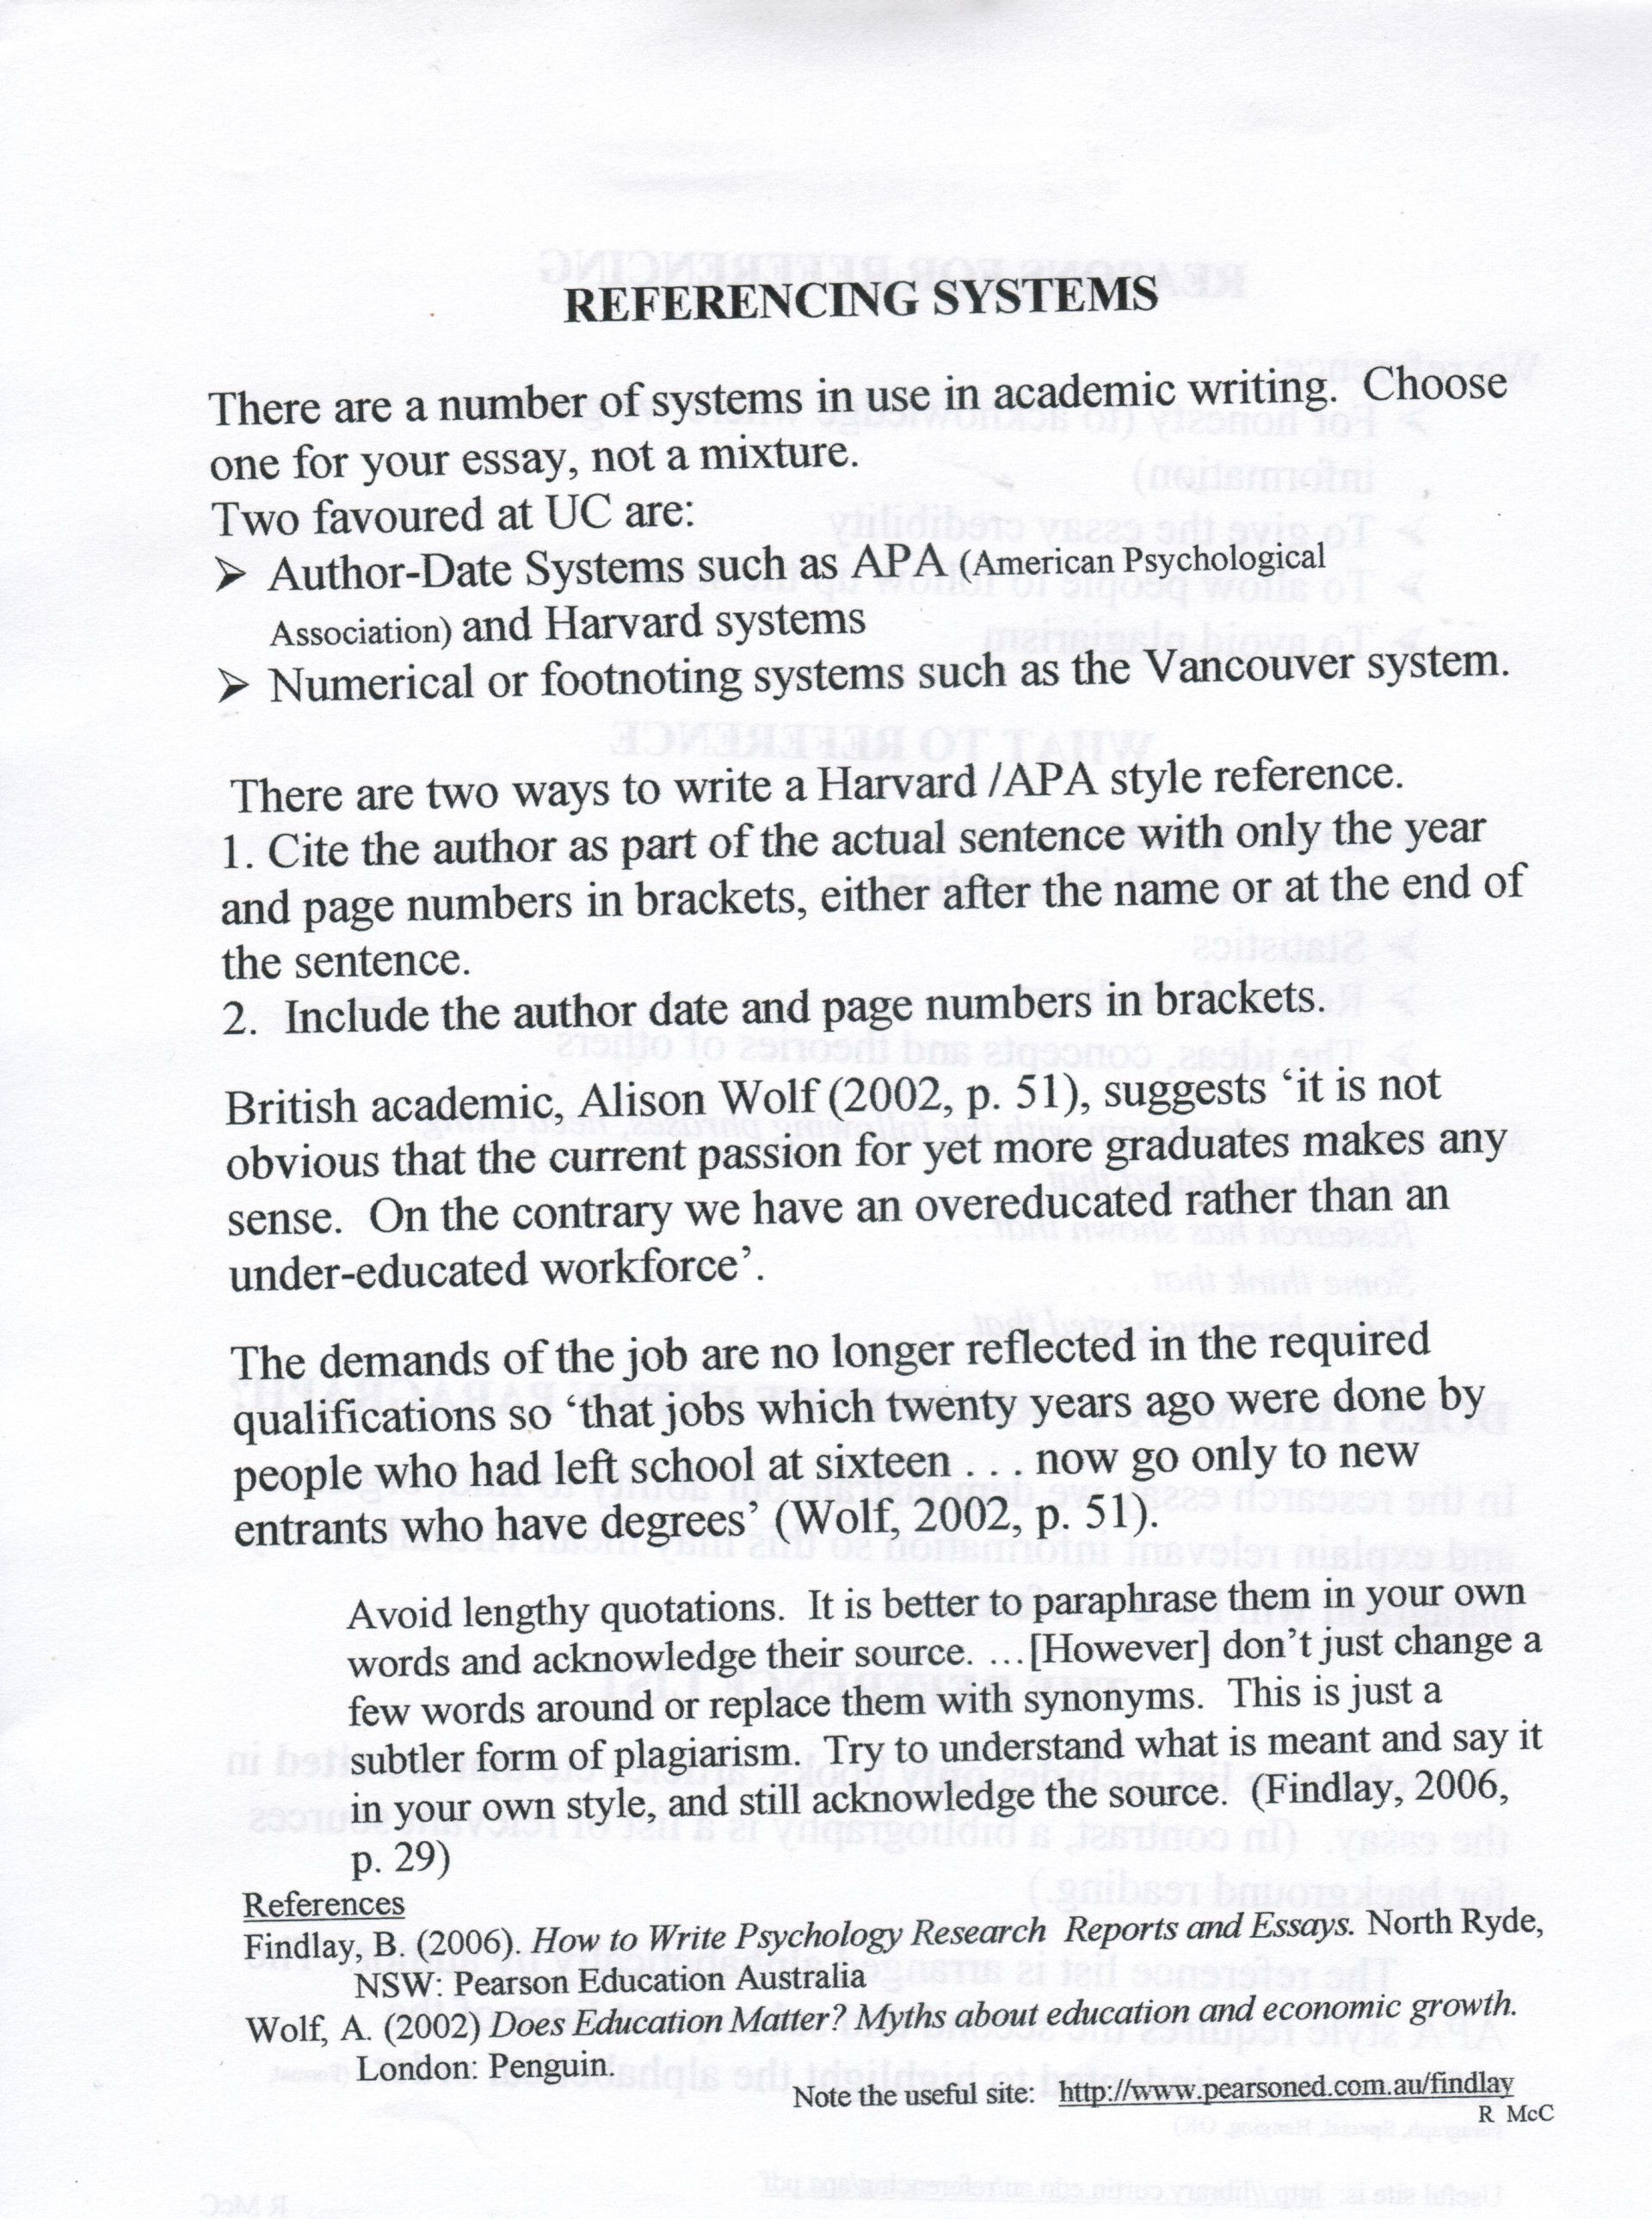 016 Essay Example Quoting In An Cite Essays Work Cited Works How To Write Bibliography For Harvard Referencing Sy Uk Law Extended Legal Annotated Frightening A Book Mla 1920